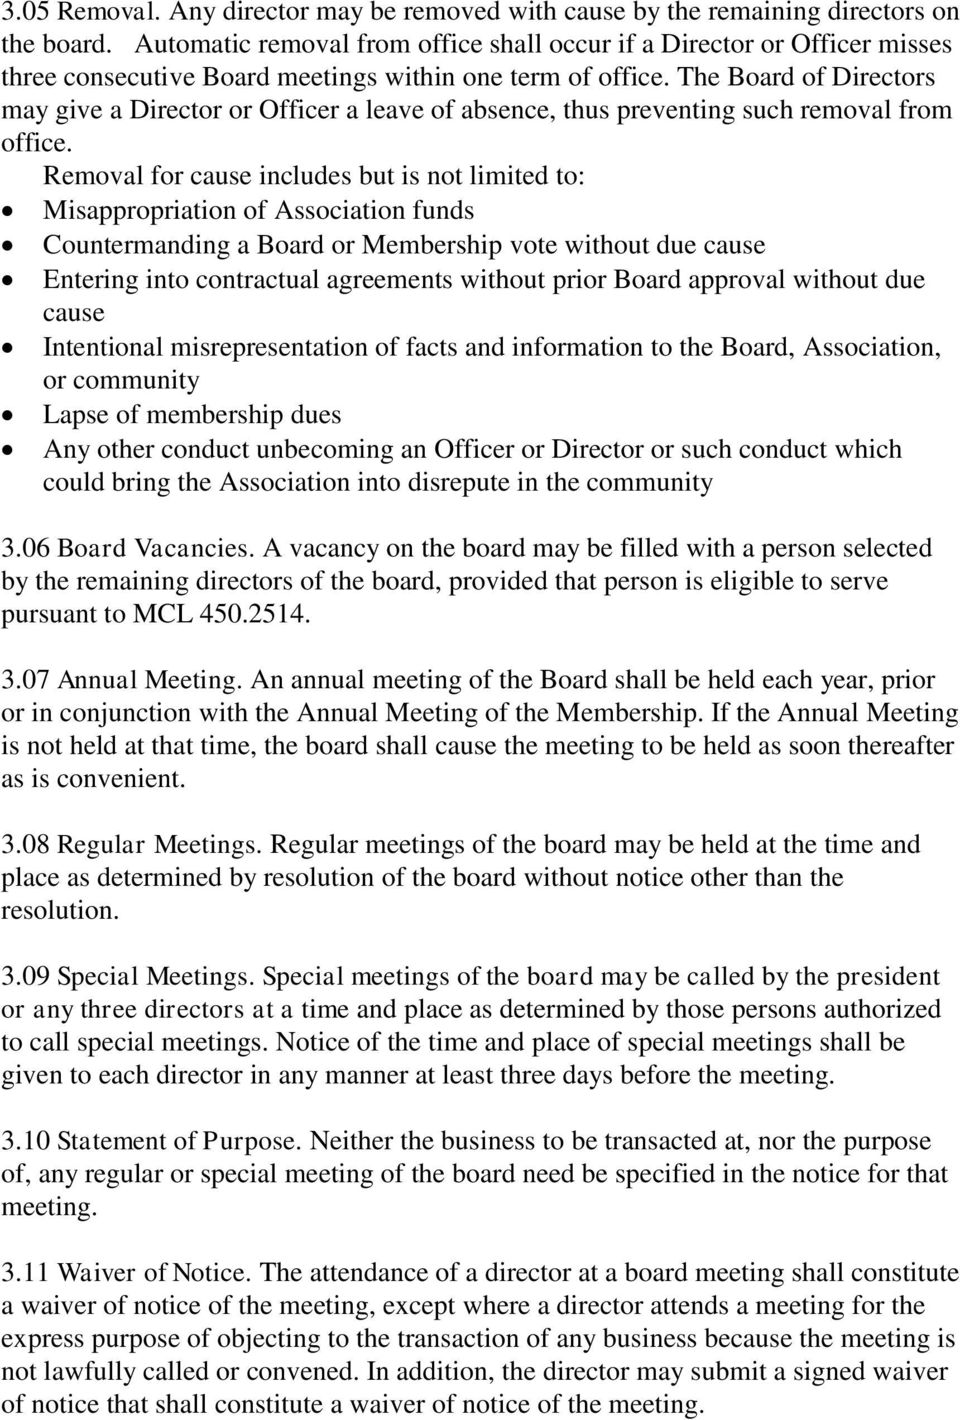 The Board of Directors may give a Director or Officer a leave of absence, thus preventing such removal from office.